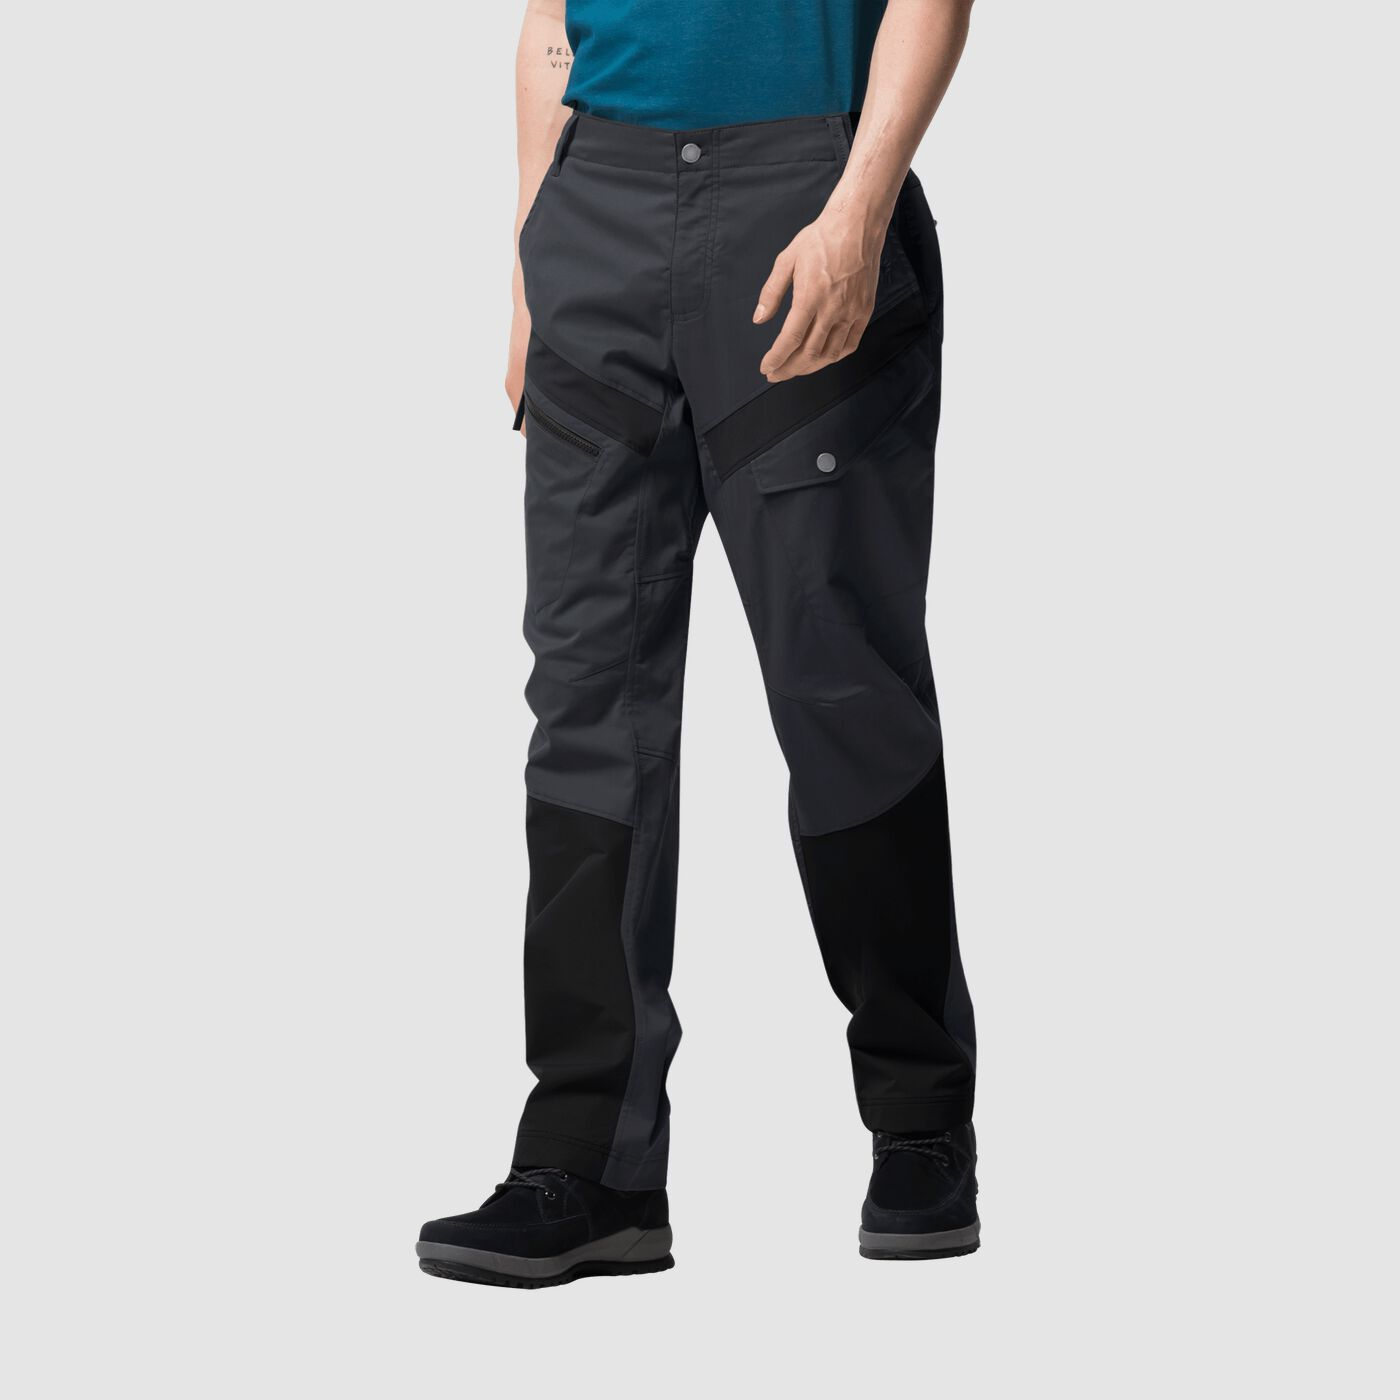 DOVER ROAD CARGO PANTS M